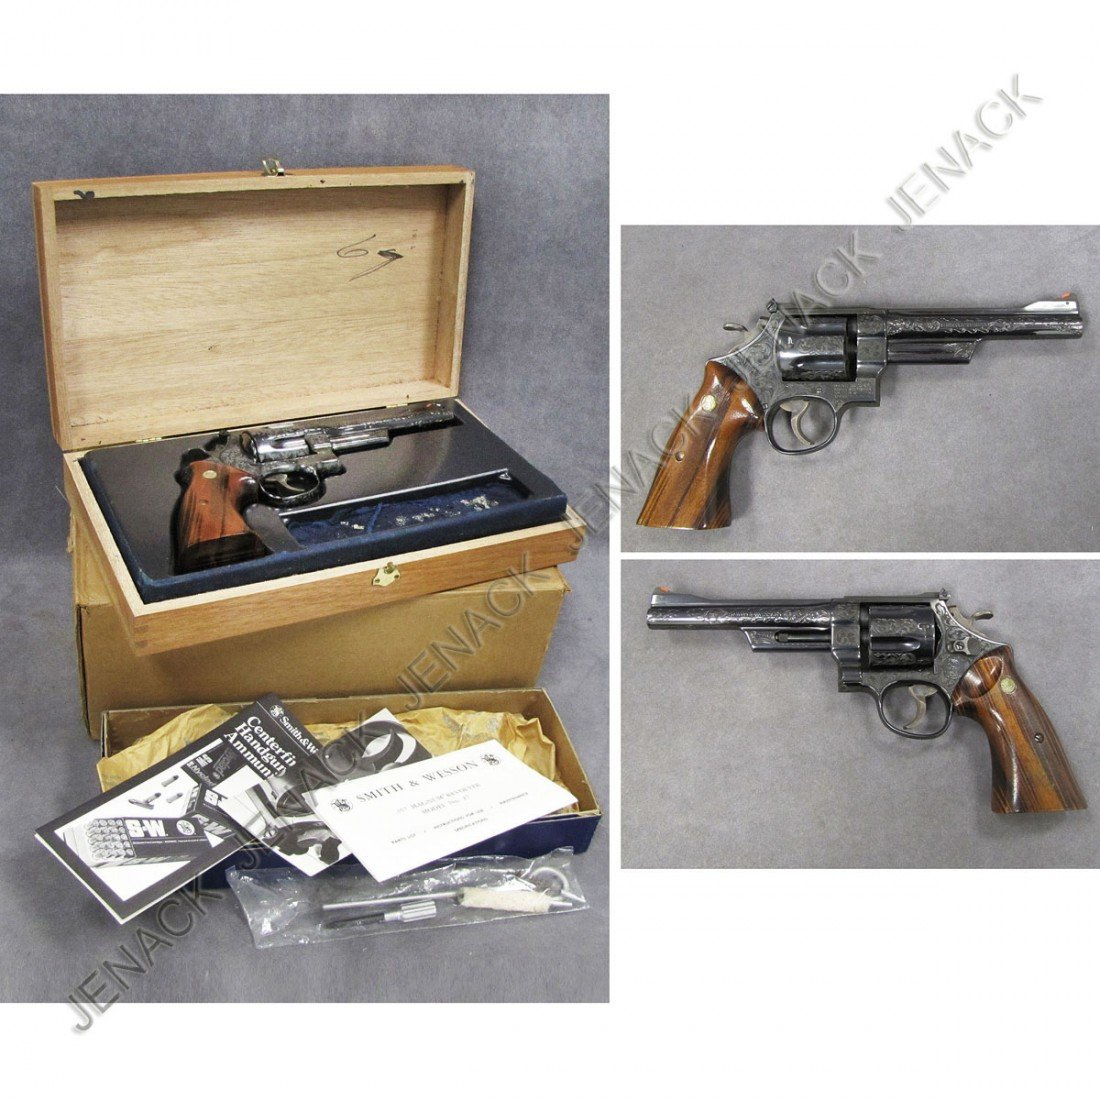 103: **RESTRICTED** SMITH & WESSON MODEL 27 REVOLVER